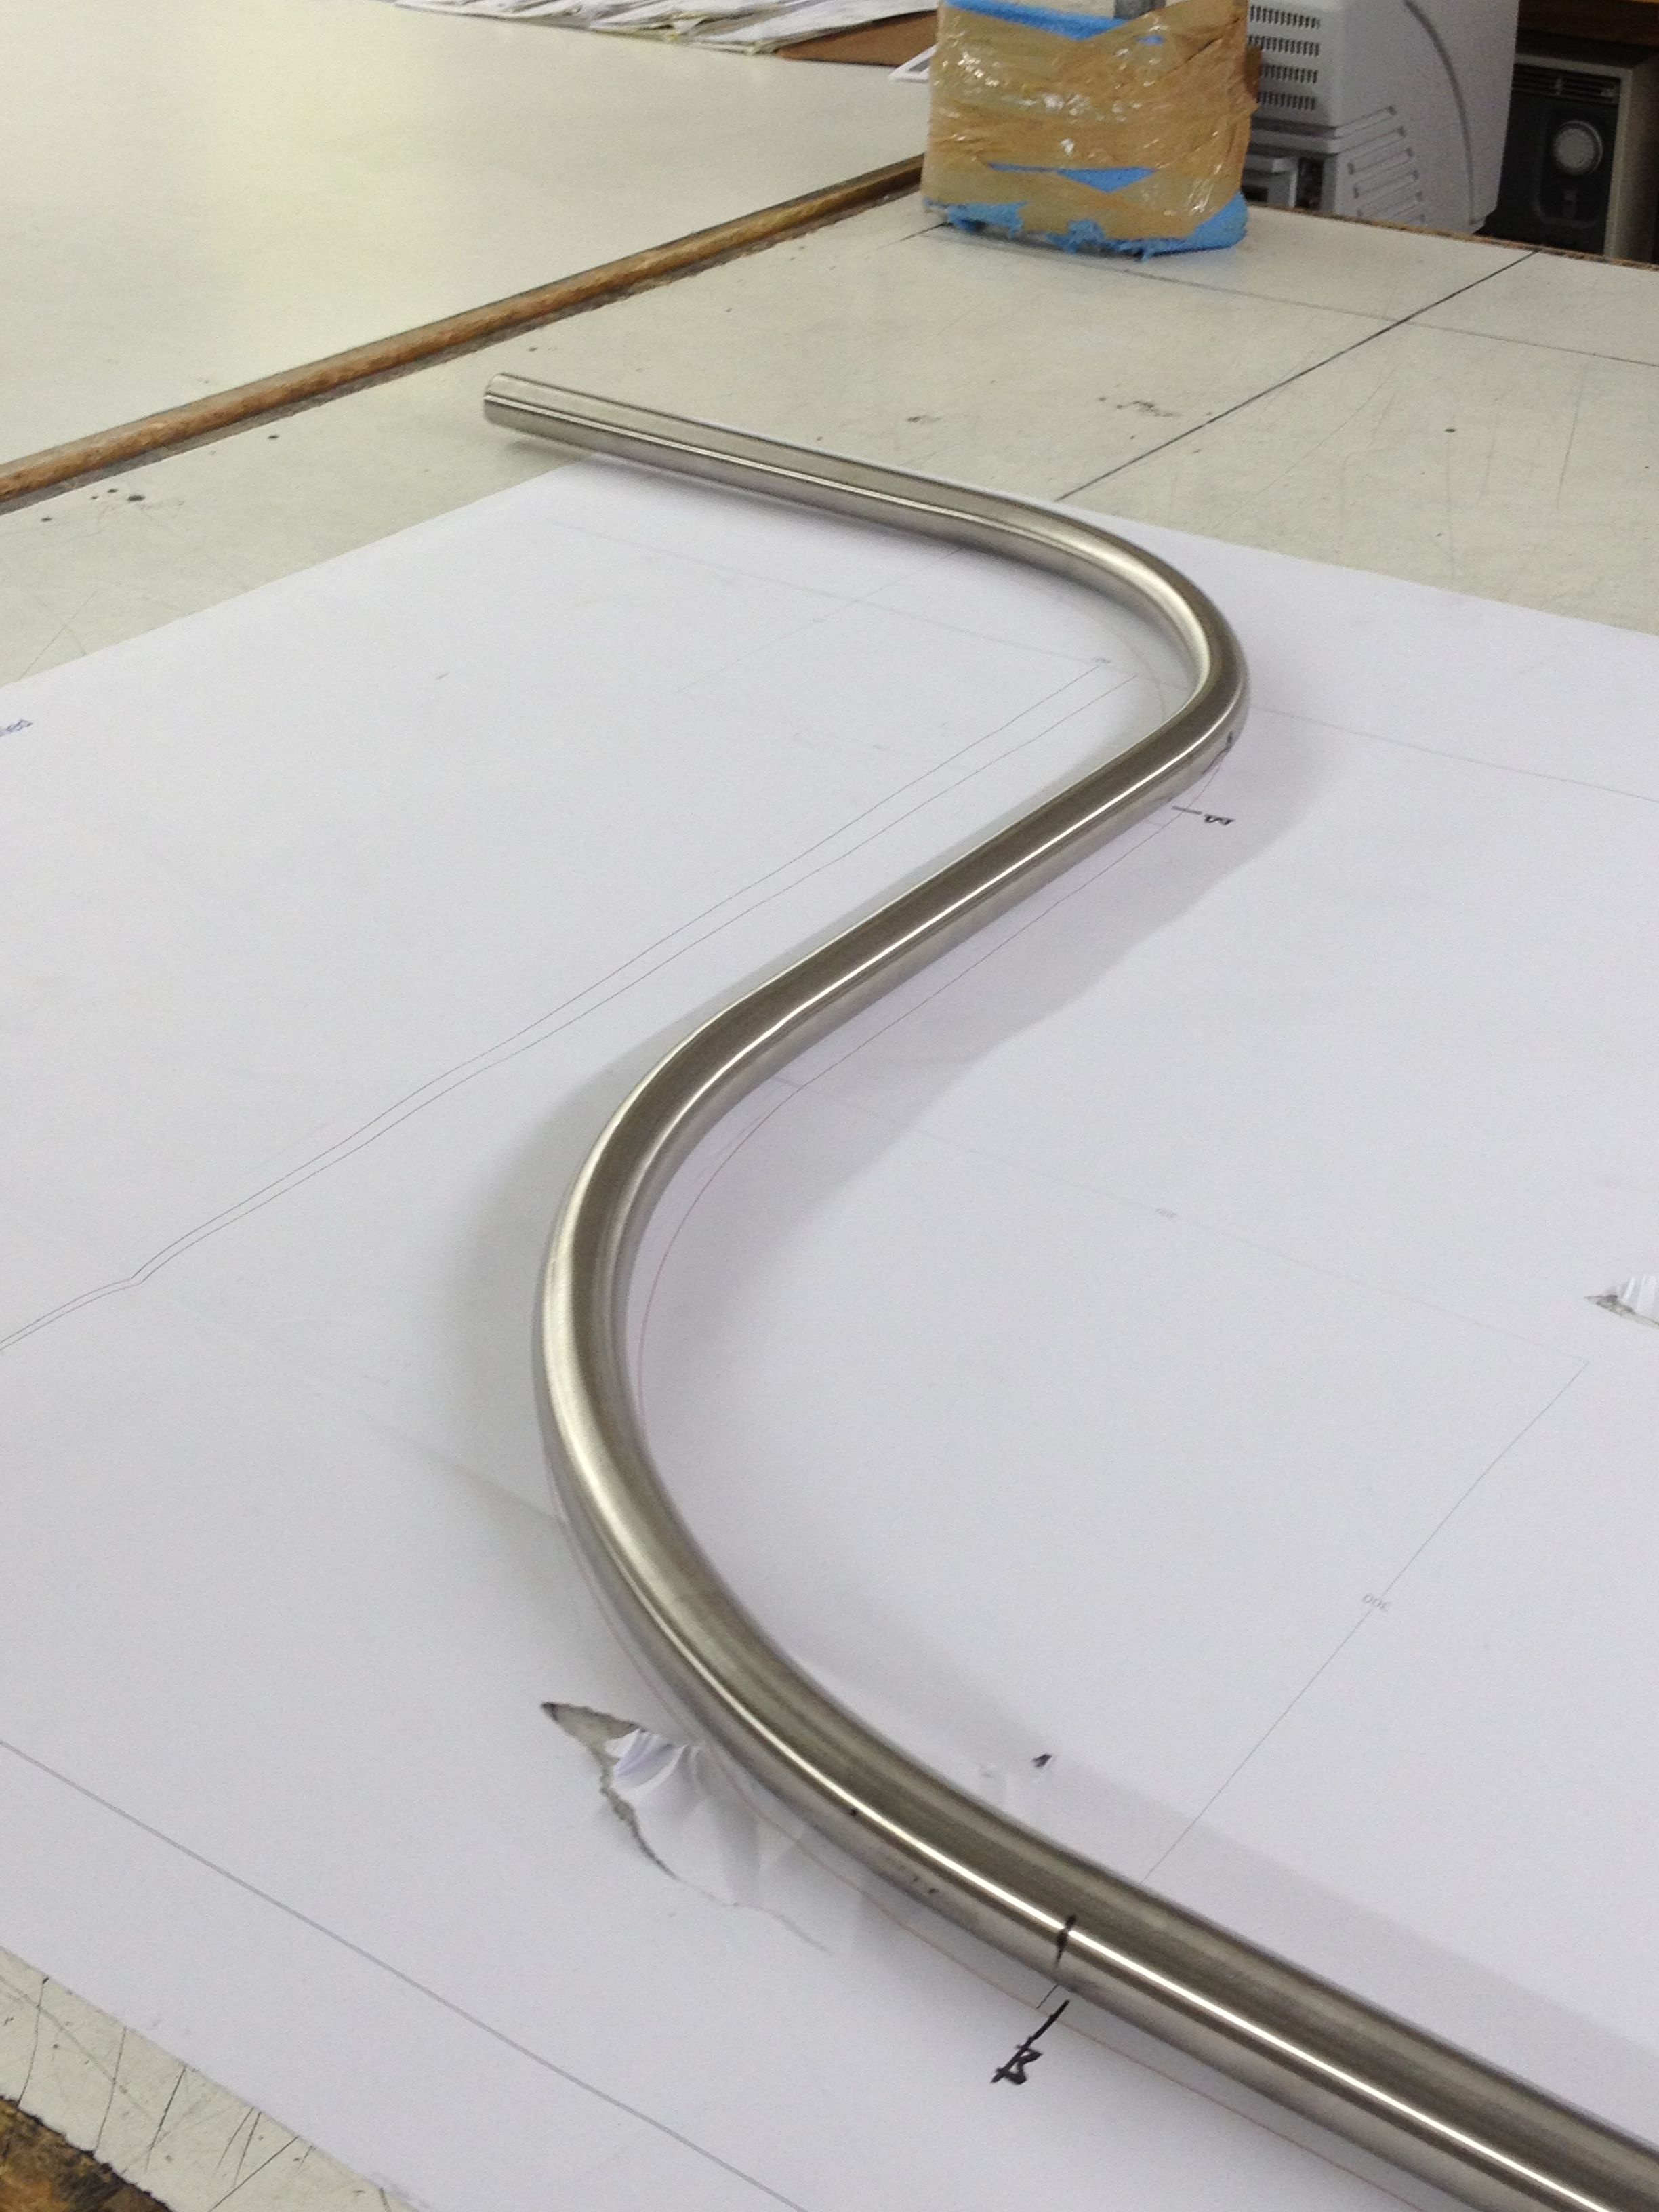 A 30mm Bradbury Pole In The Process Of Being Bent For A 90 Degree